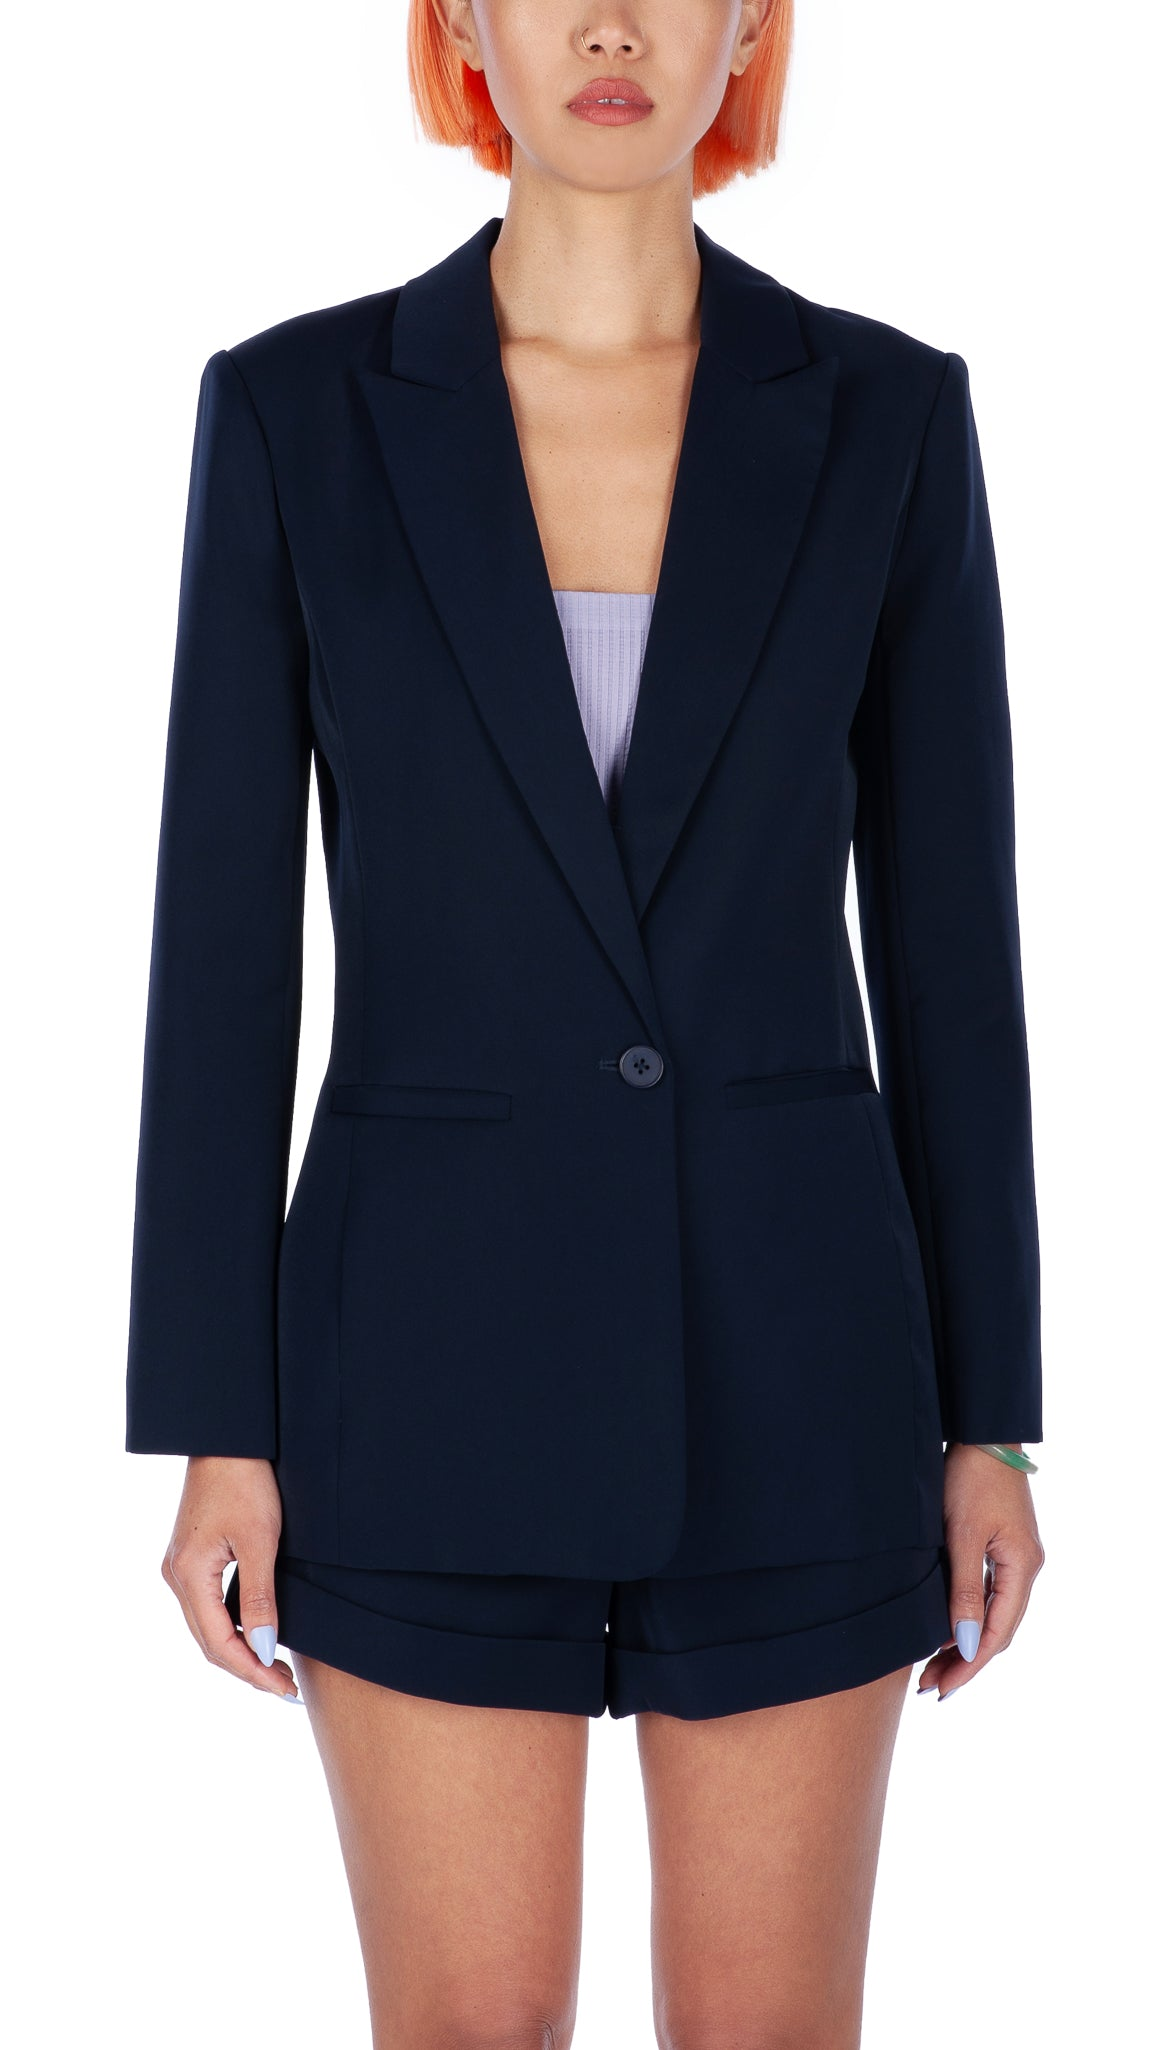 Grey Garden, Rosewood Blazer, Clothing - Jackets & Coats - Blazers - Editorial Boutique